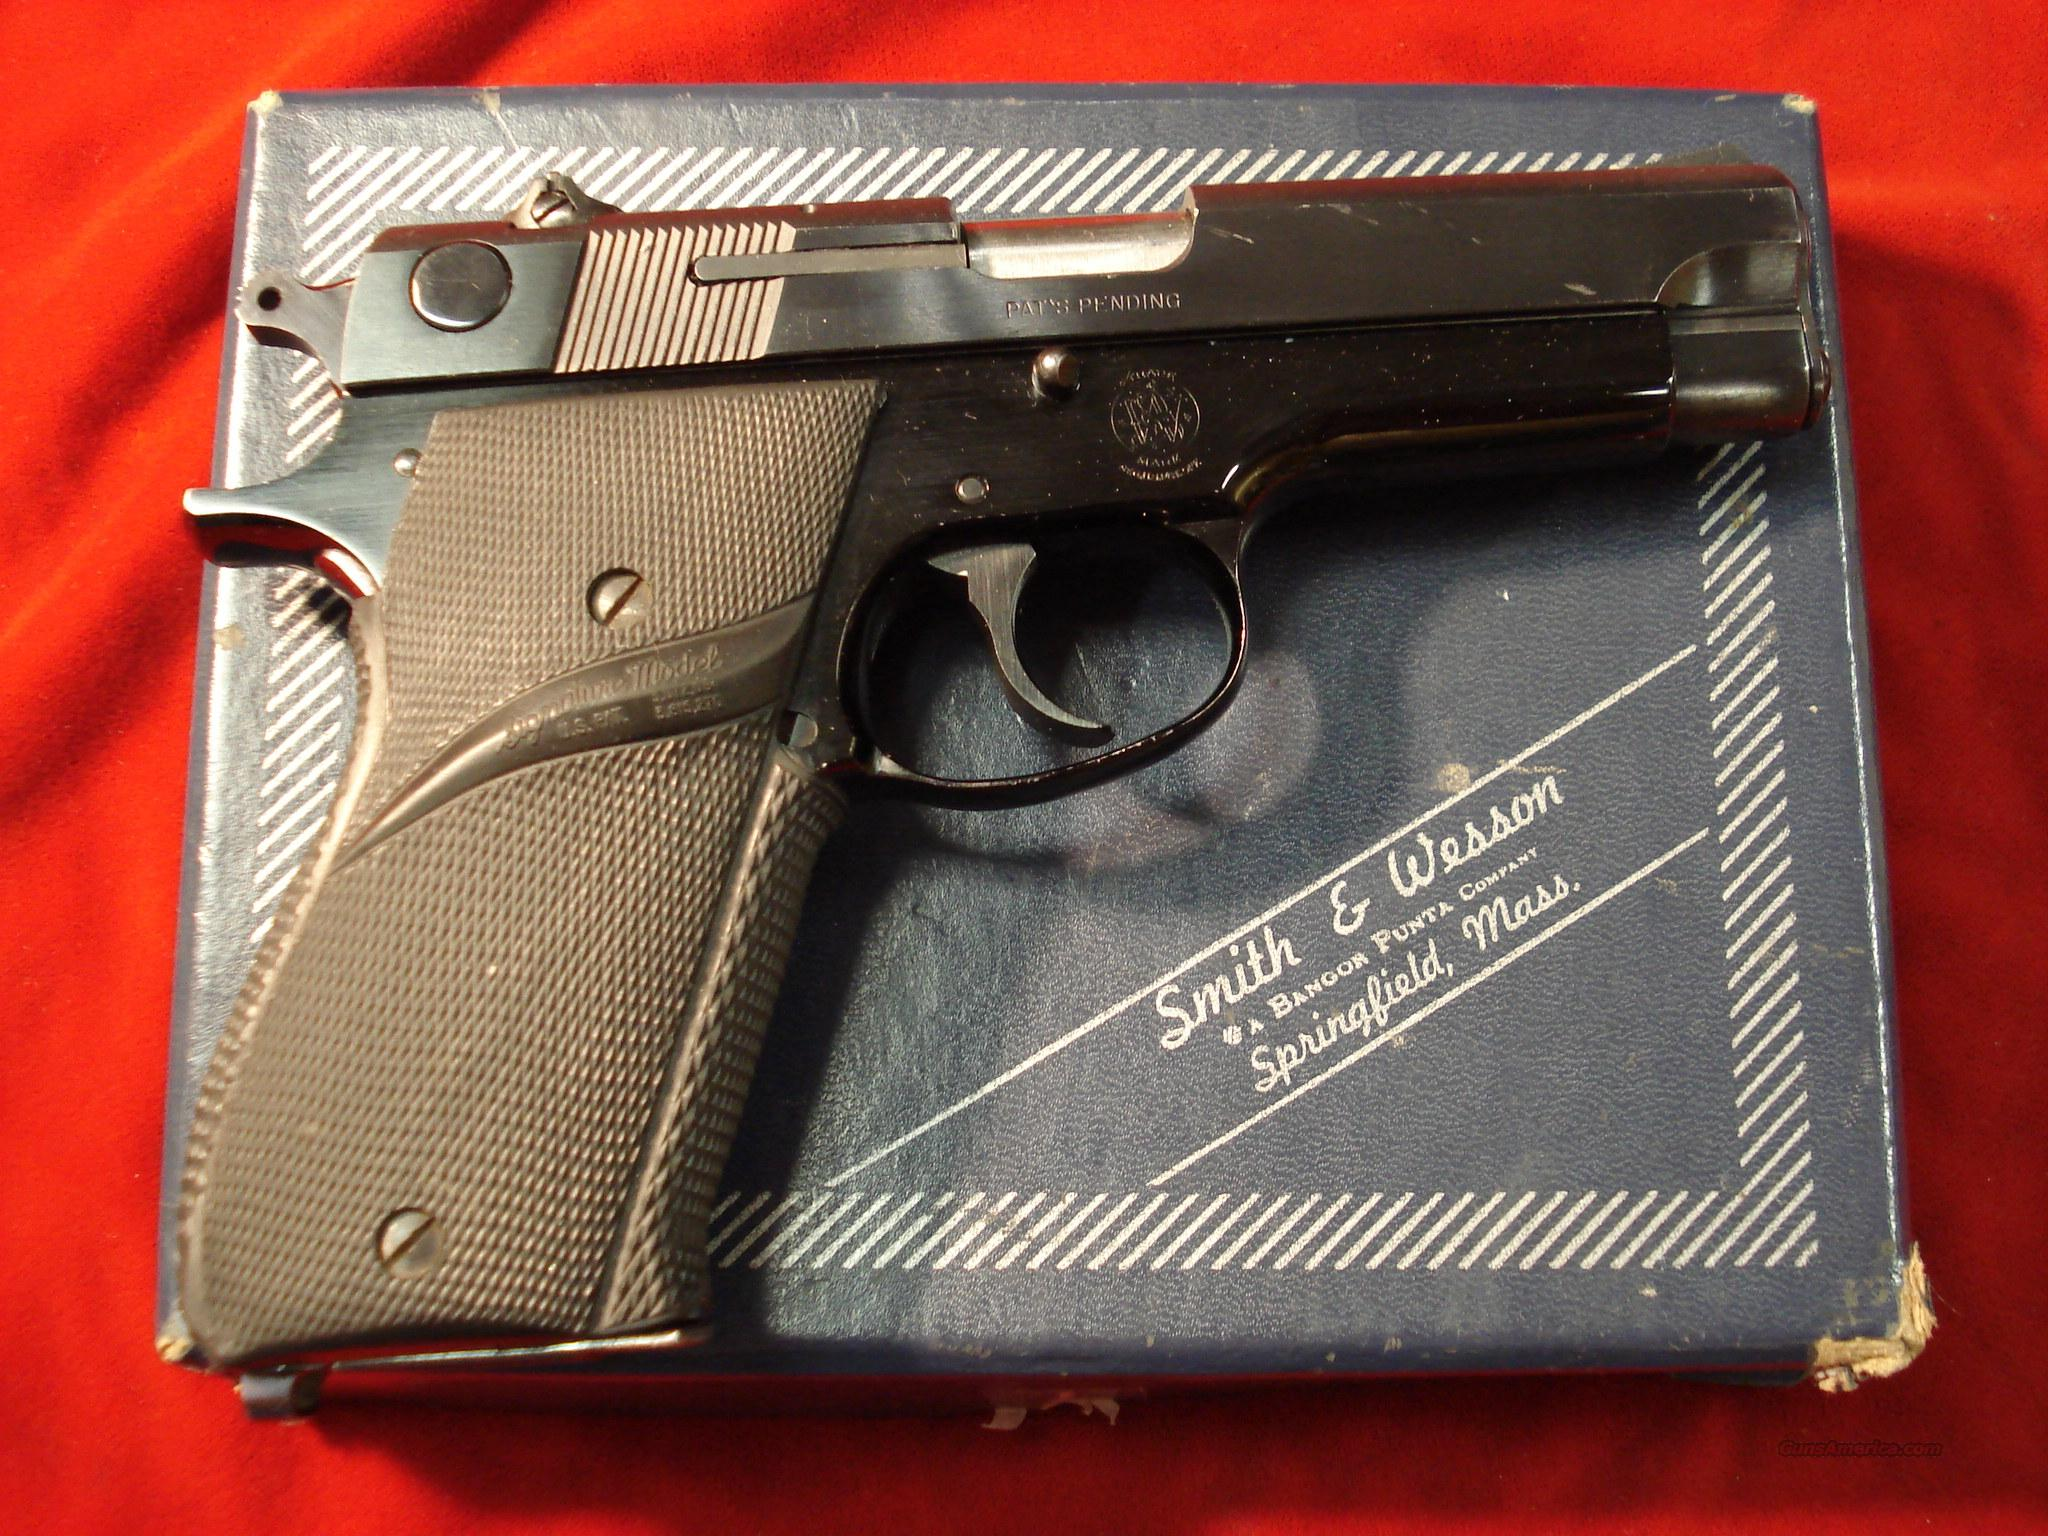 SMITH AND WESSON MODEL 39 9MM USED WITH BOX AND X-TRA MAGS  Guns > Pistols > Smith & Wesson Pistols - Autos > Alloy Frame